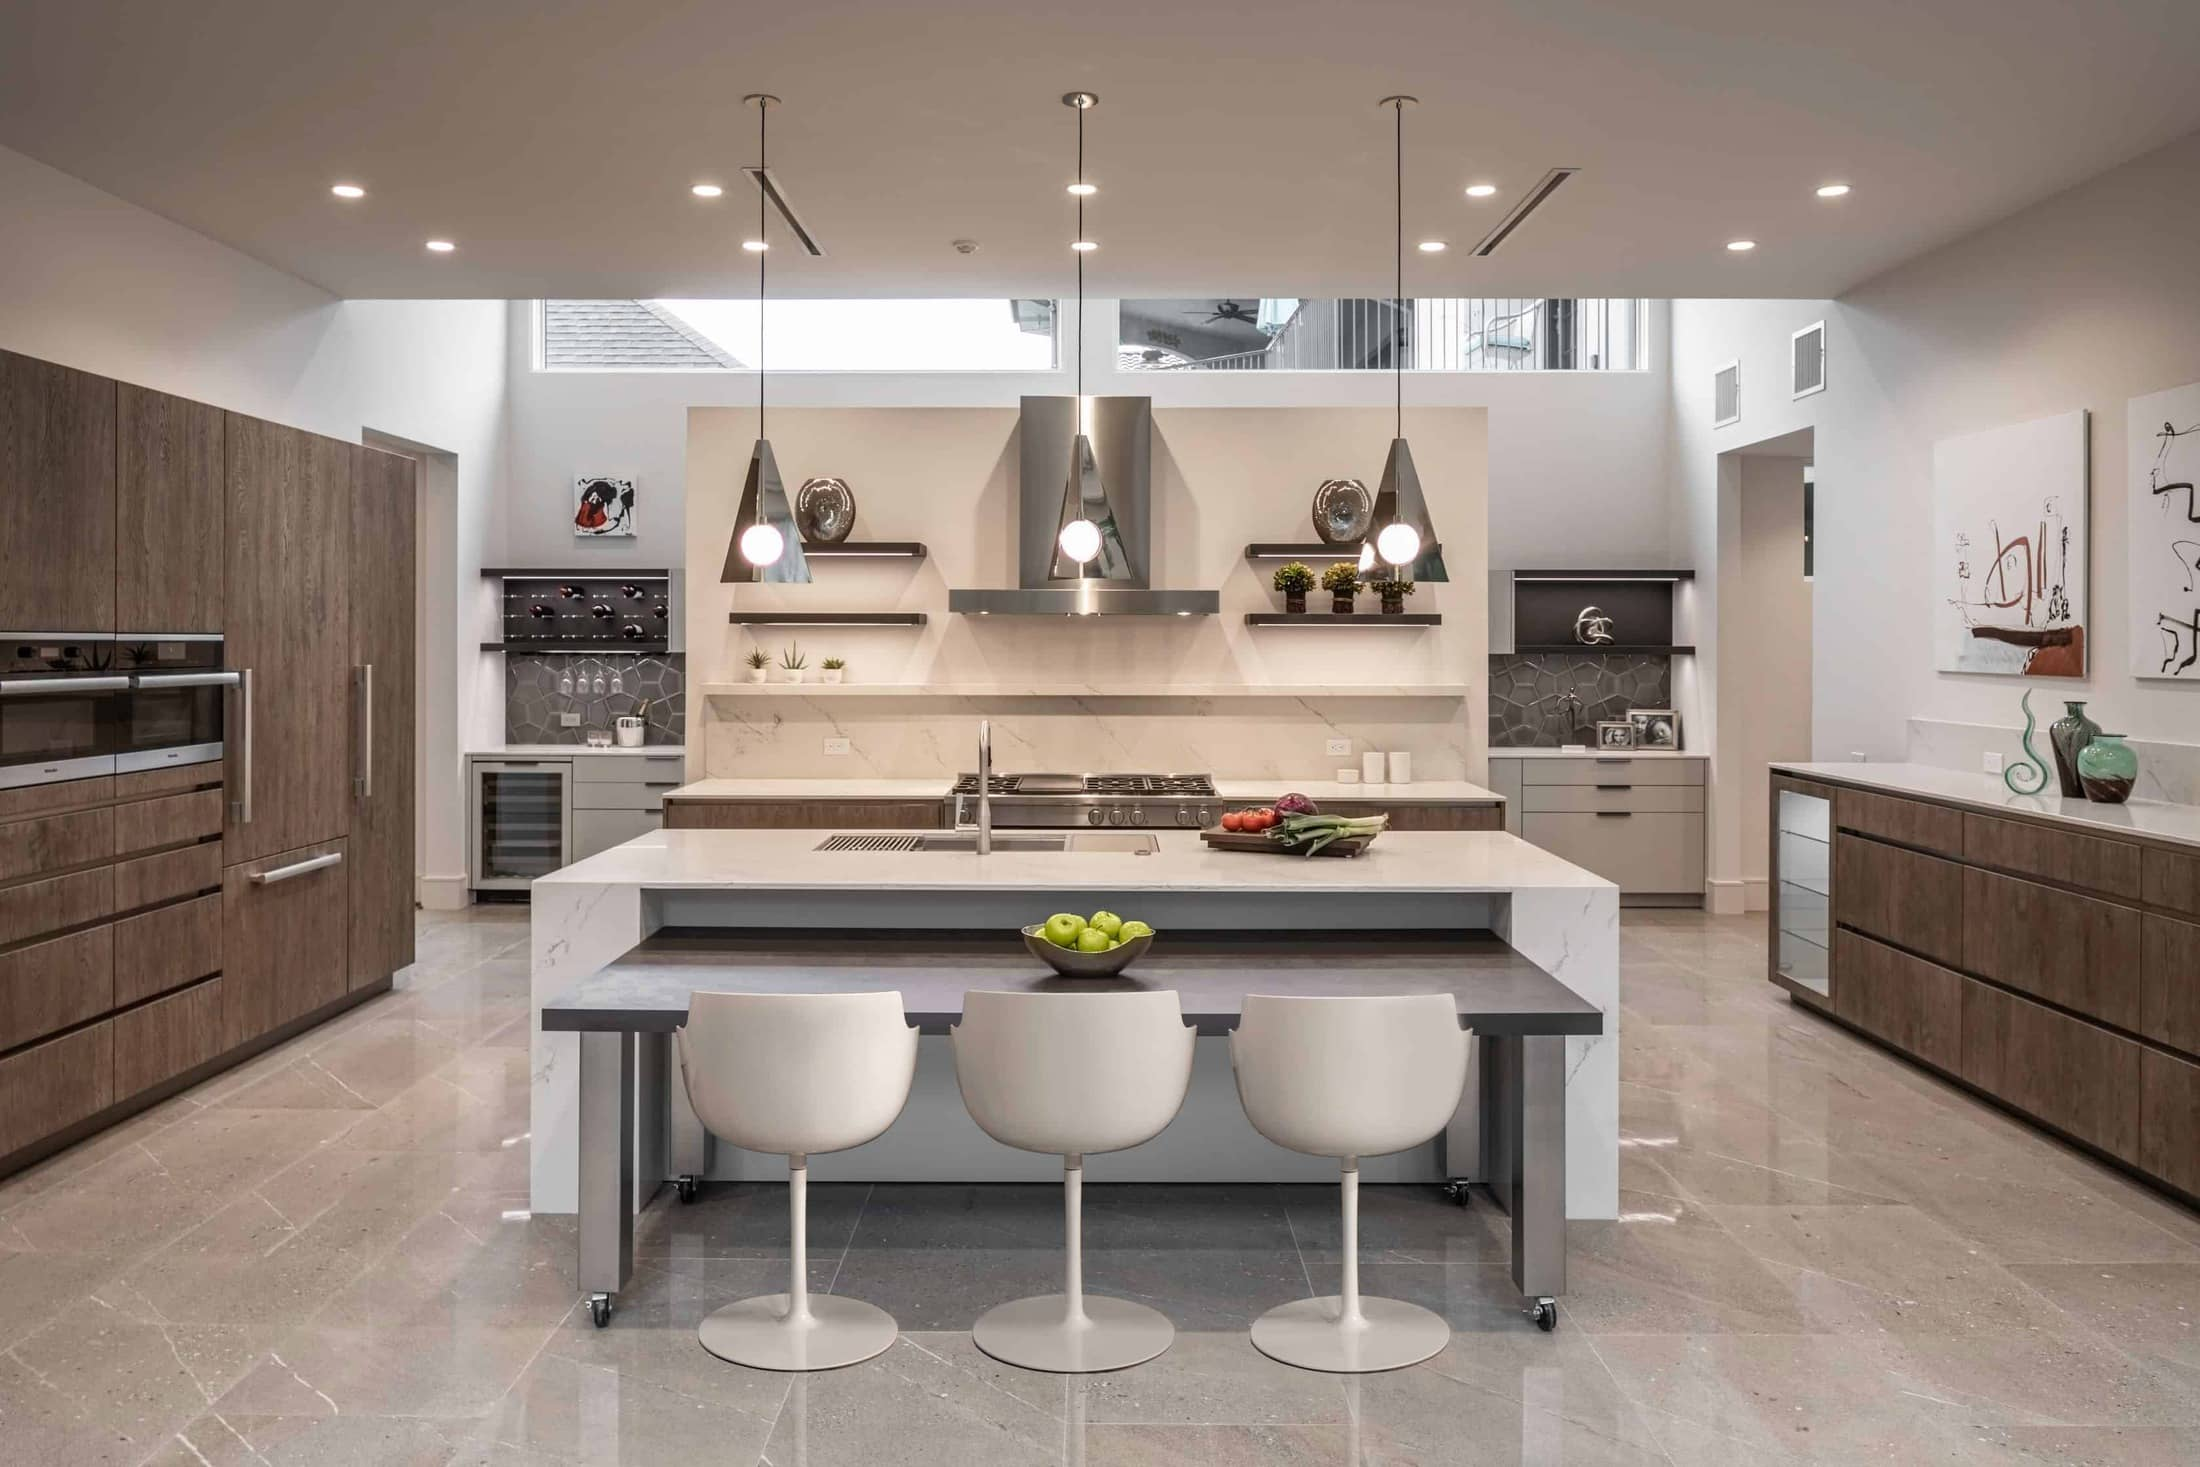 custom german kitchen of a washington coalition memorial park area home in houston renovated by chavez custom homes